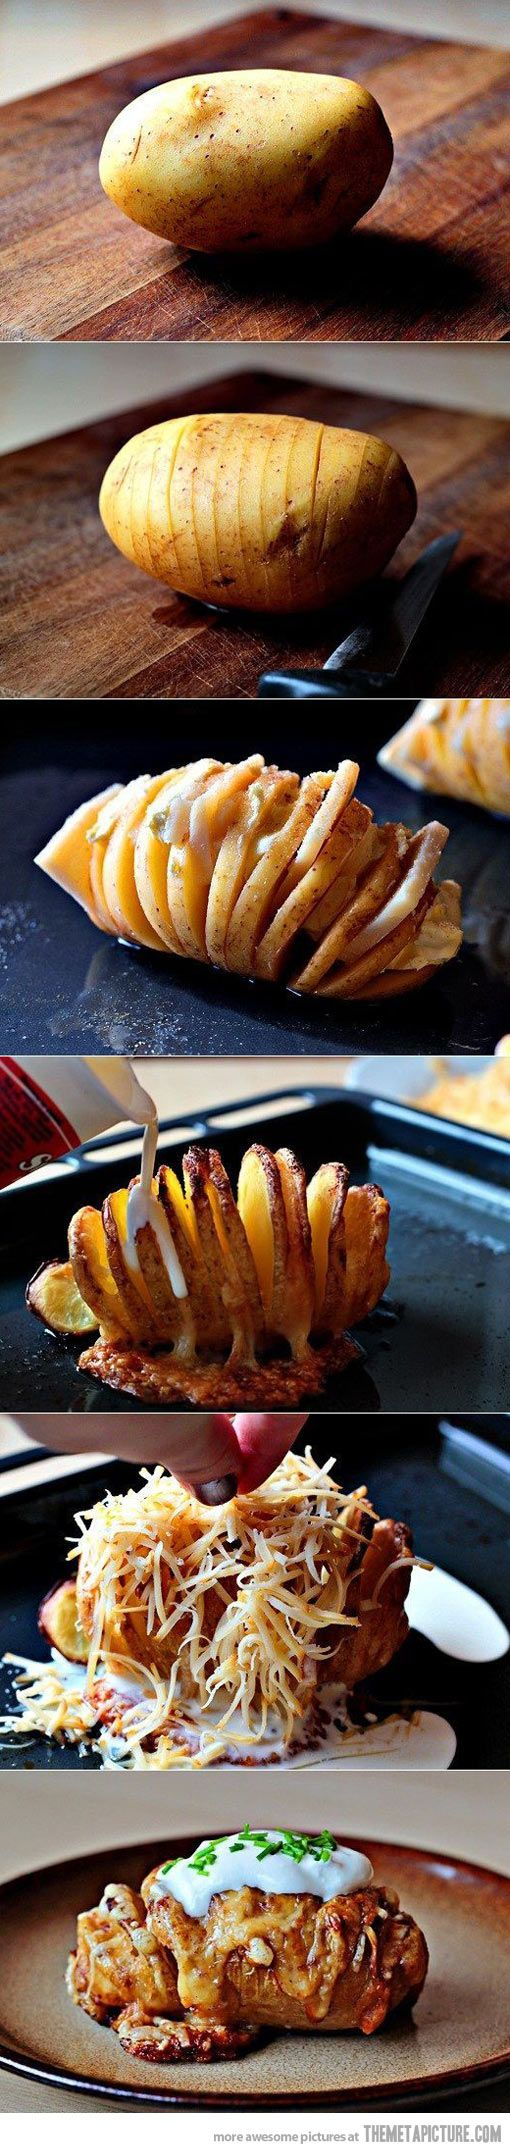 Scalloped Hasselback Potatoes